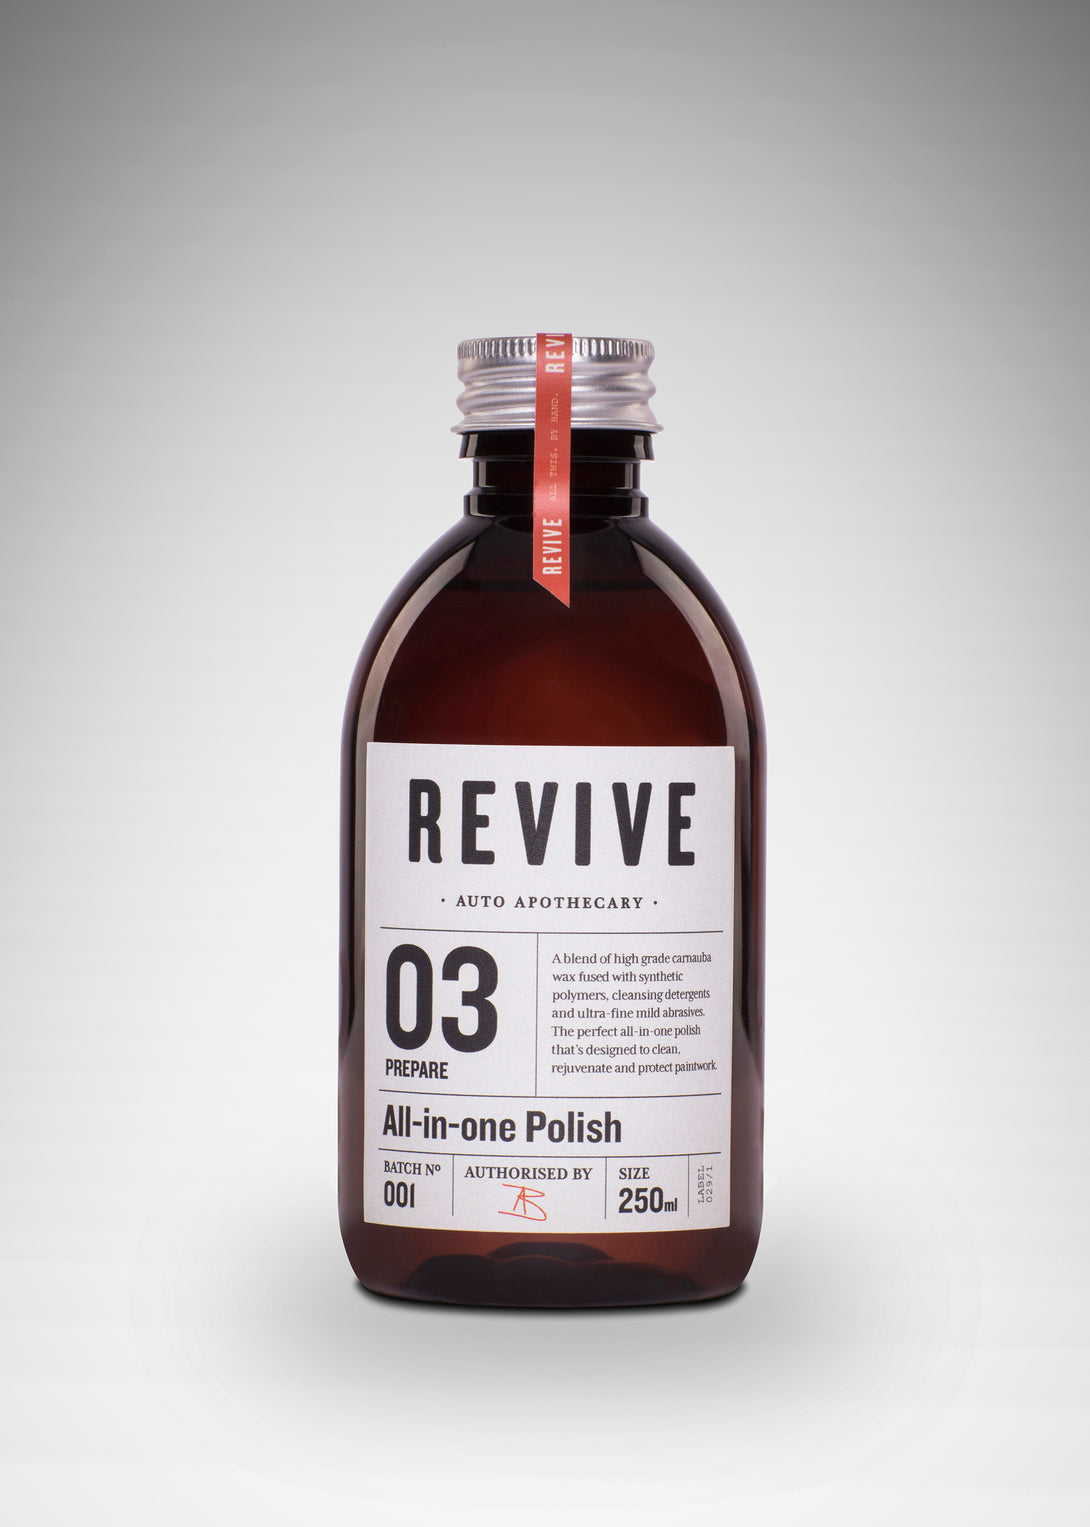 Revive 03 All-in-one Polish